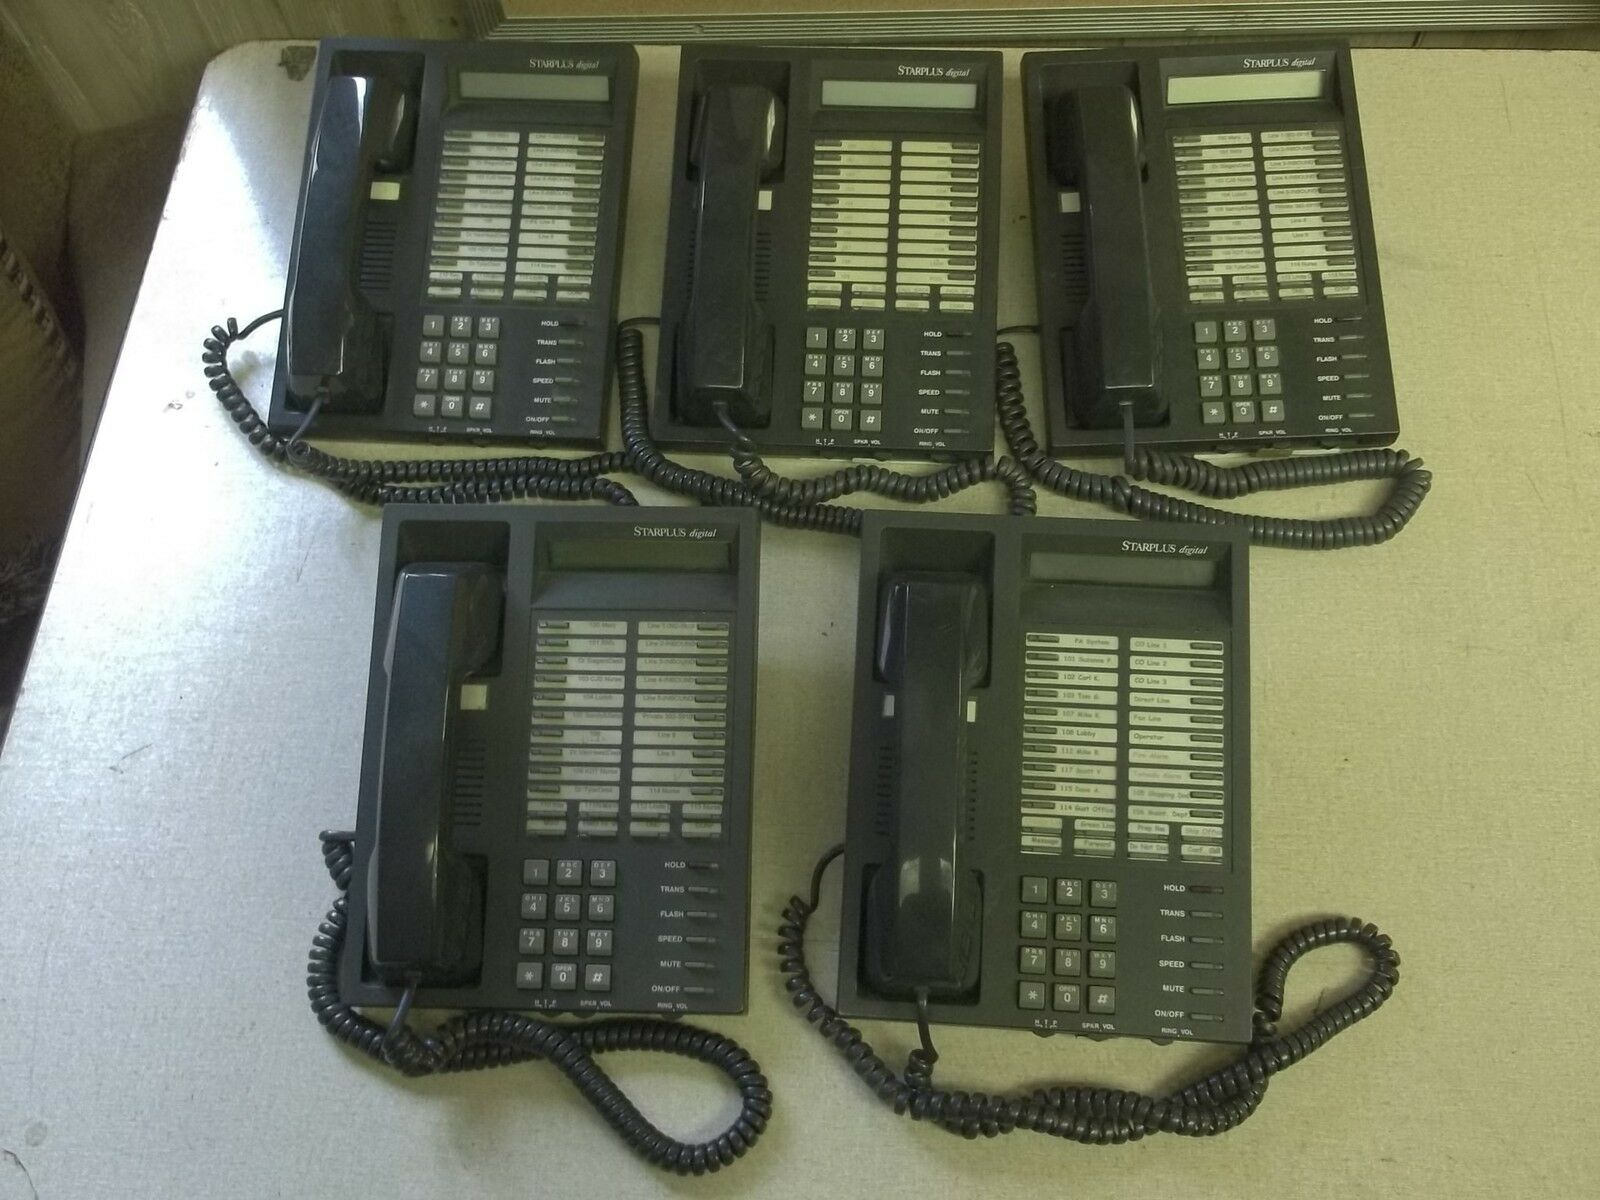 Starplus EIS85300, Lot of 5 Business Office Digital Phones FREE SHIPPING